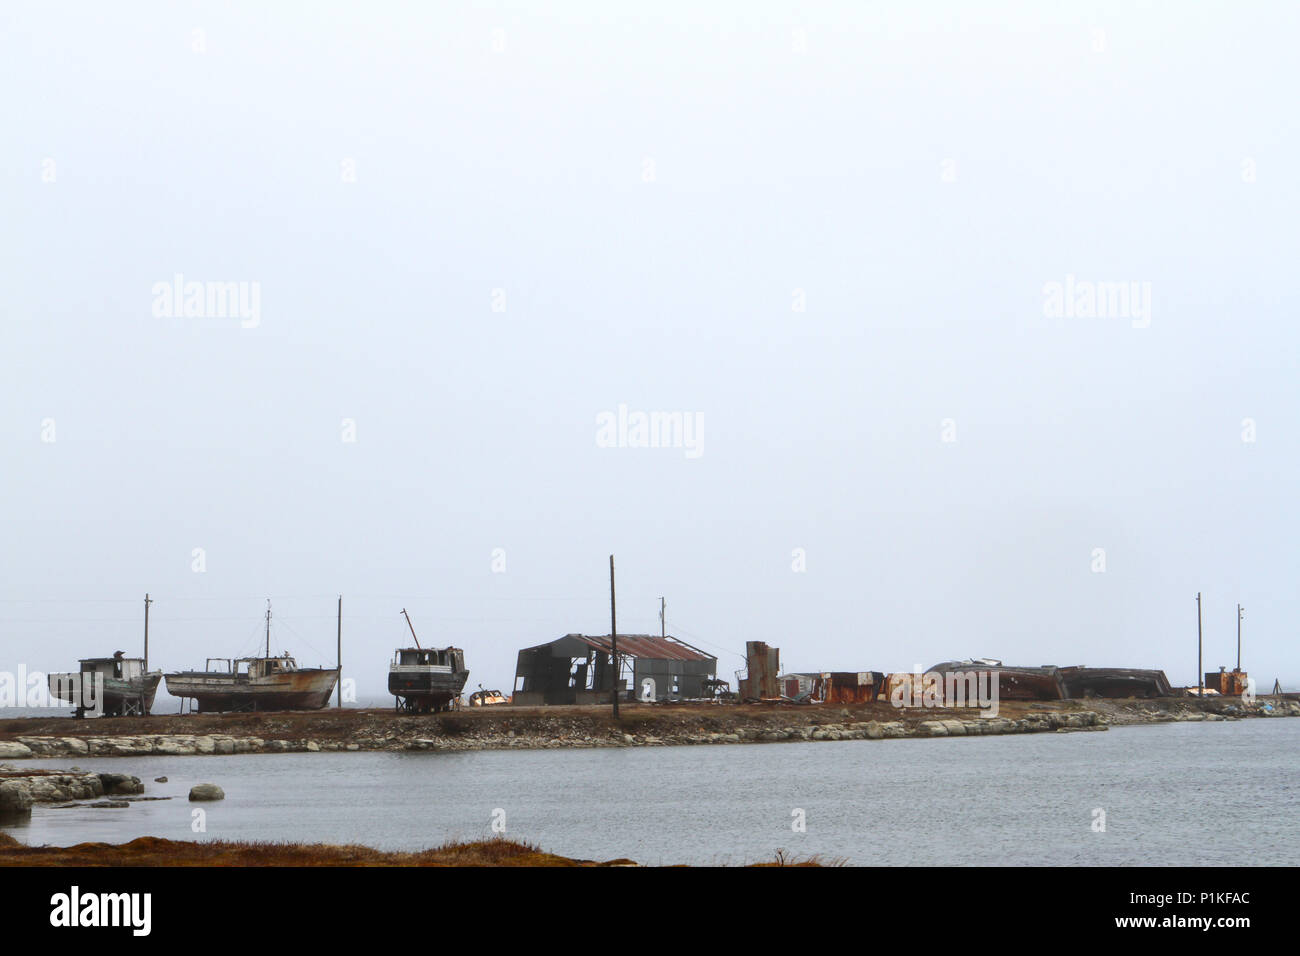 Fishing boat graveyard at Flowers Cove, Newfoundland, Canada - Stock Image